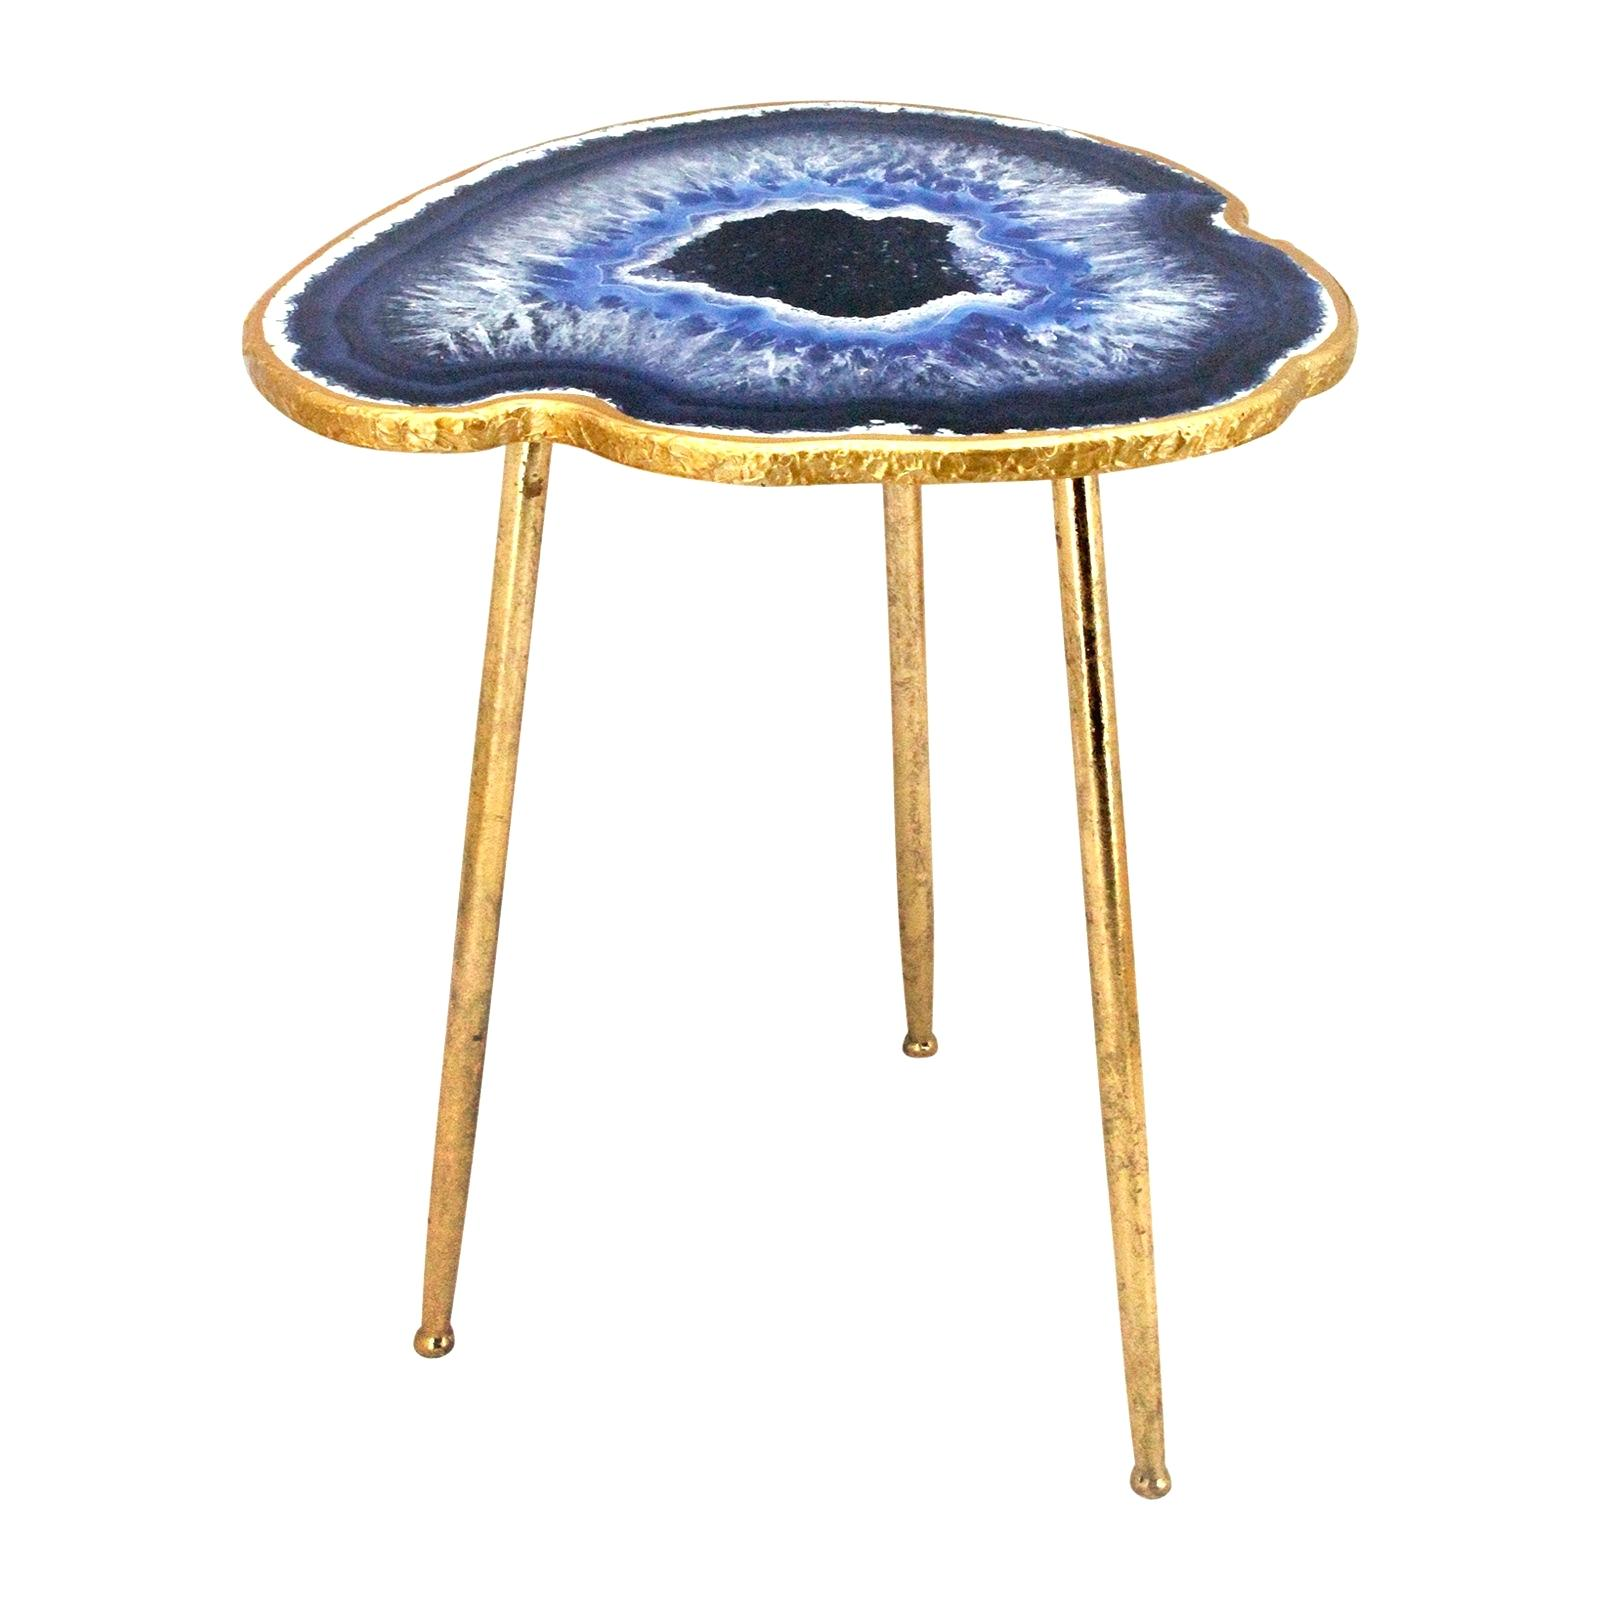 agate accent table ocane info gold and blue metal threshold glass faux small stand white nest tables large tilting patio umbrella side sliding barn door black round expandable